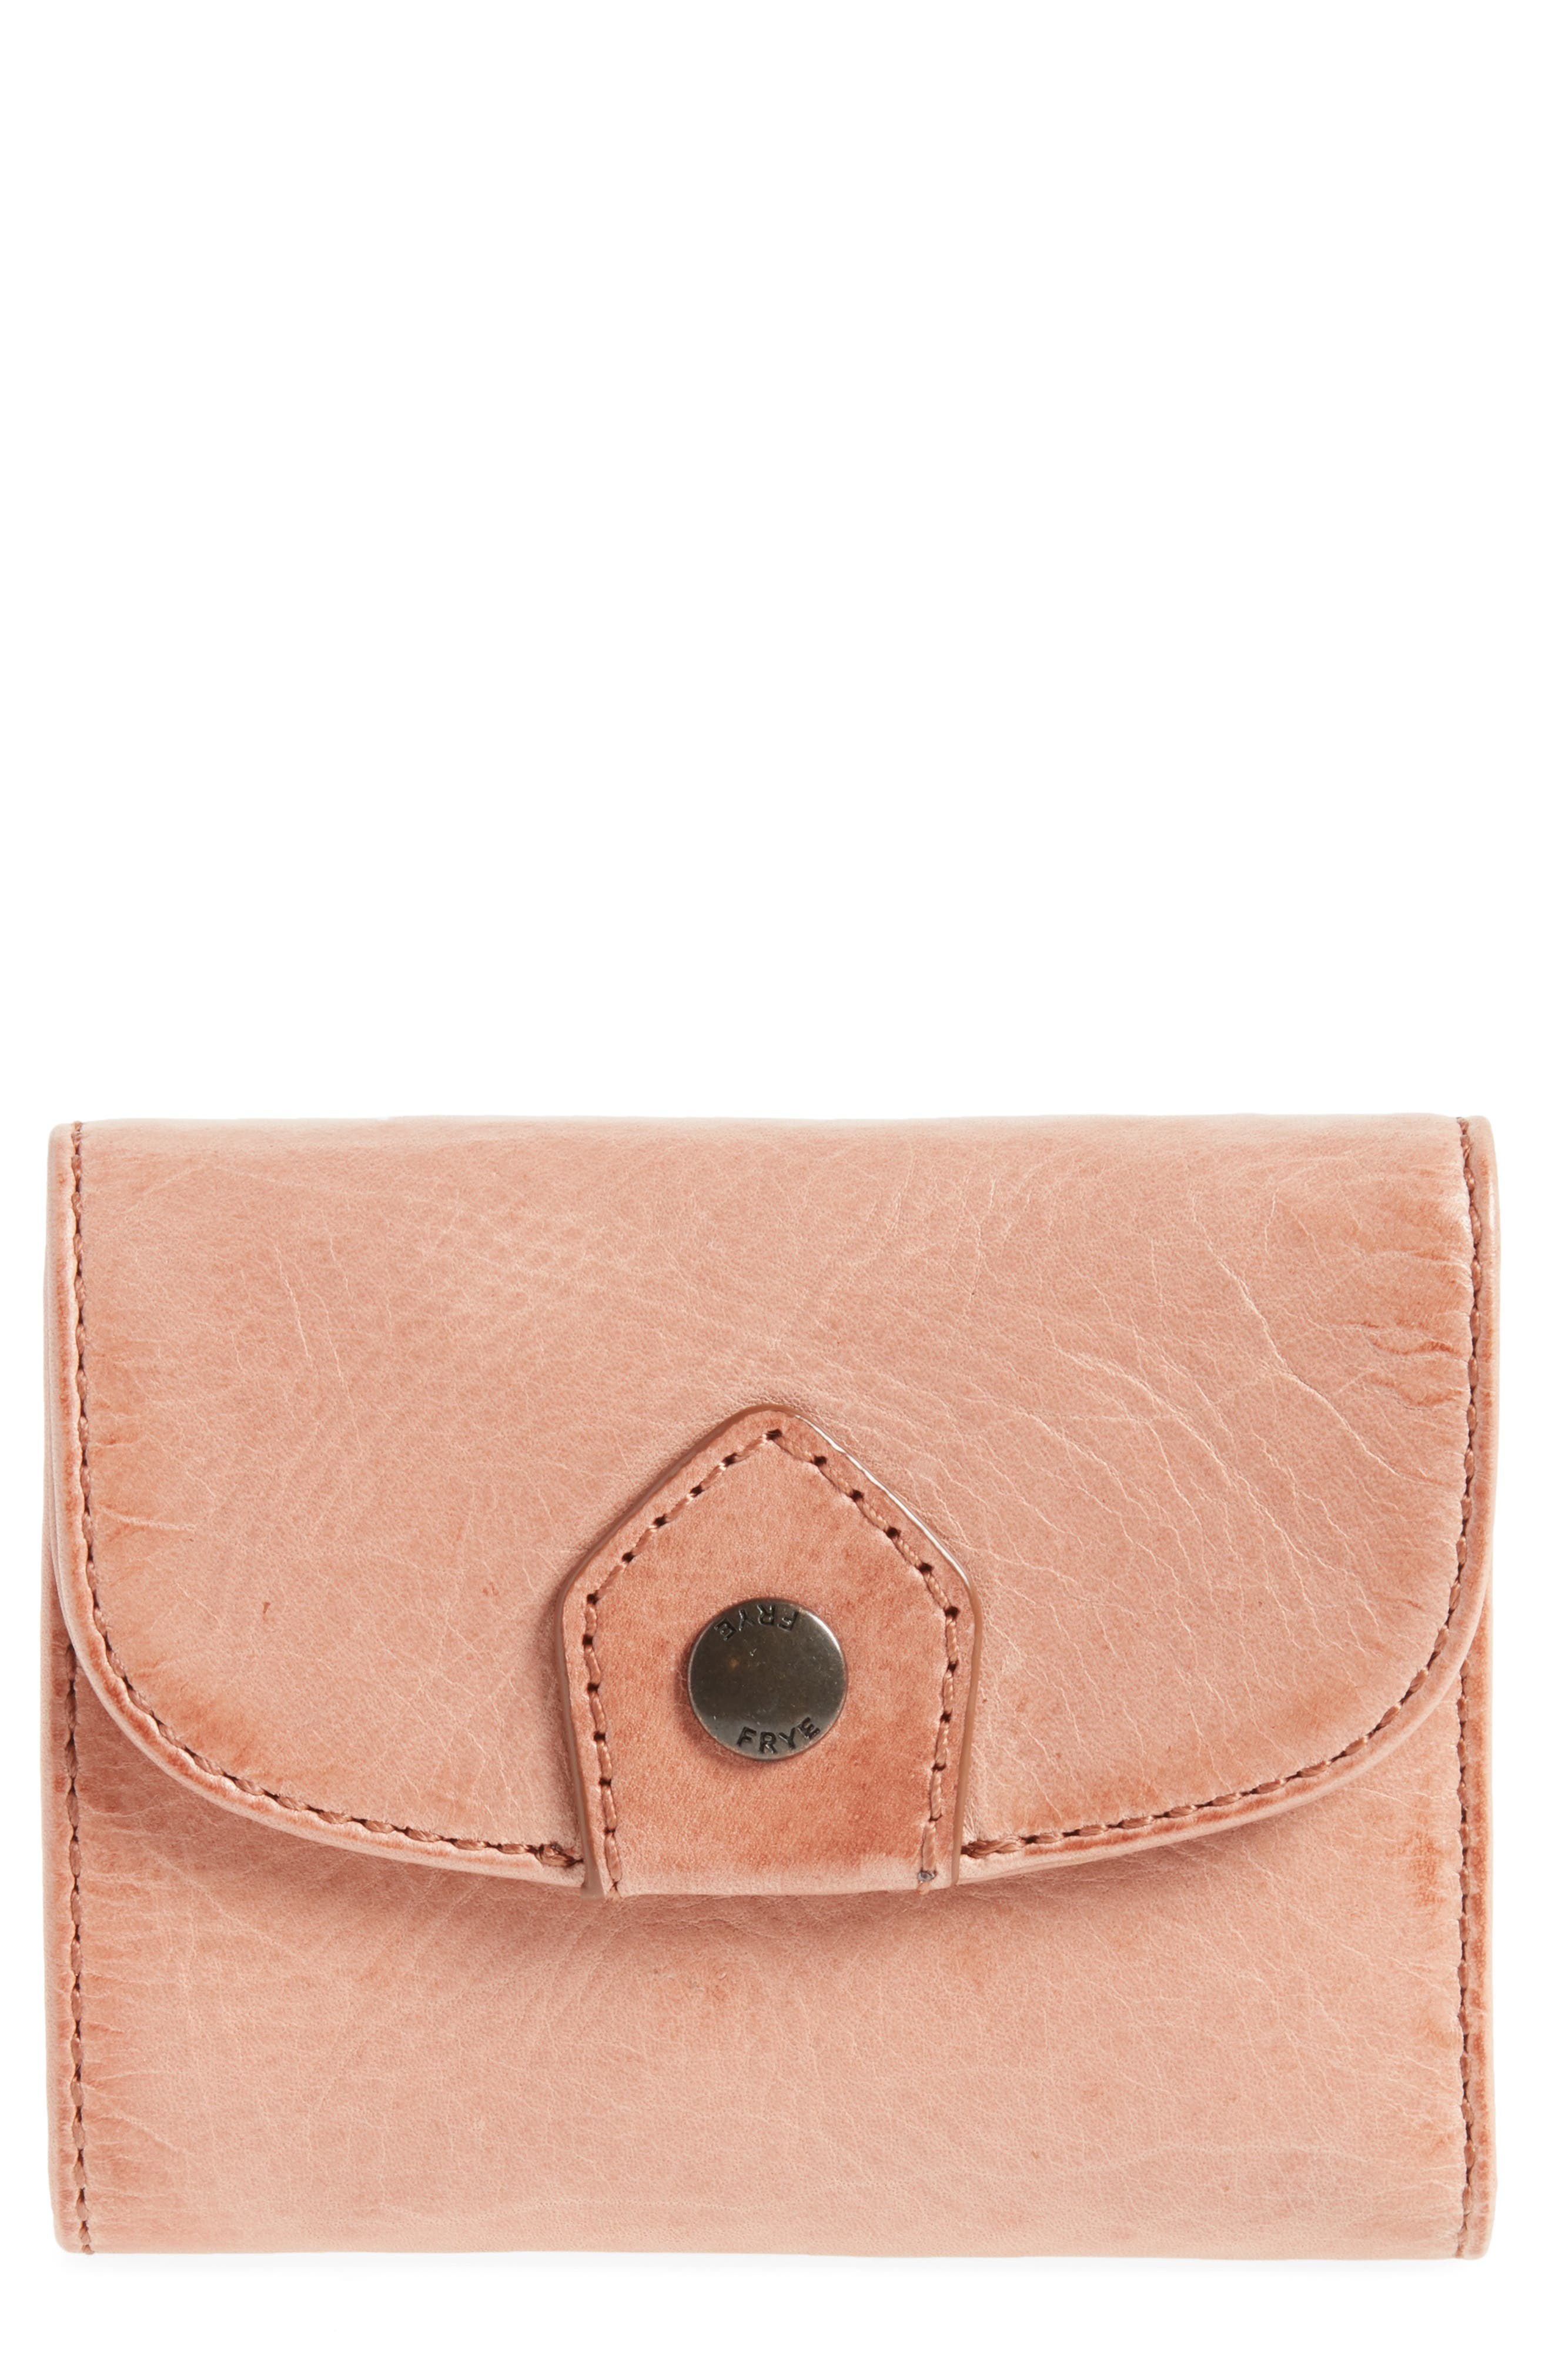 Frye Melissa Medium Trifold Leather Wallet